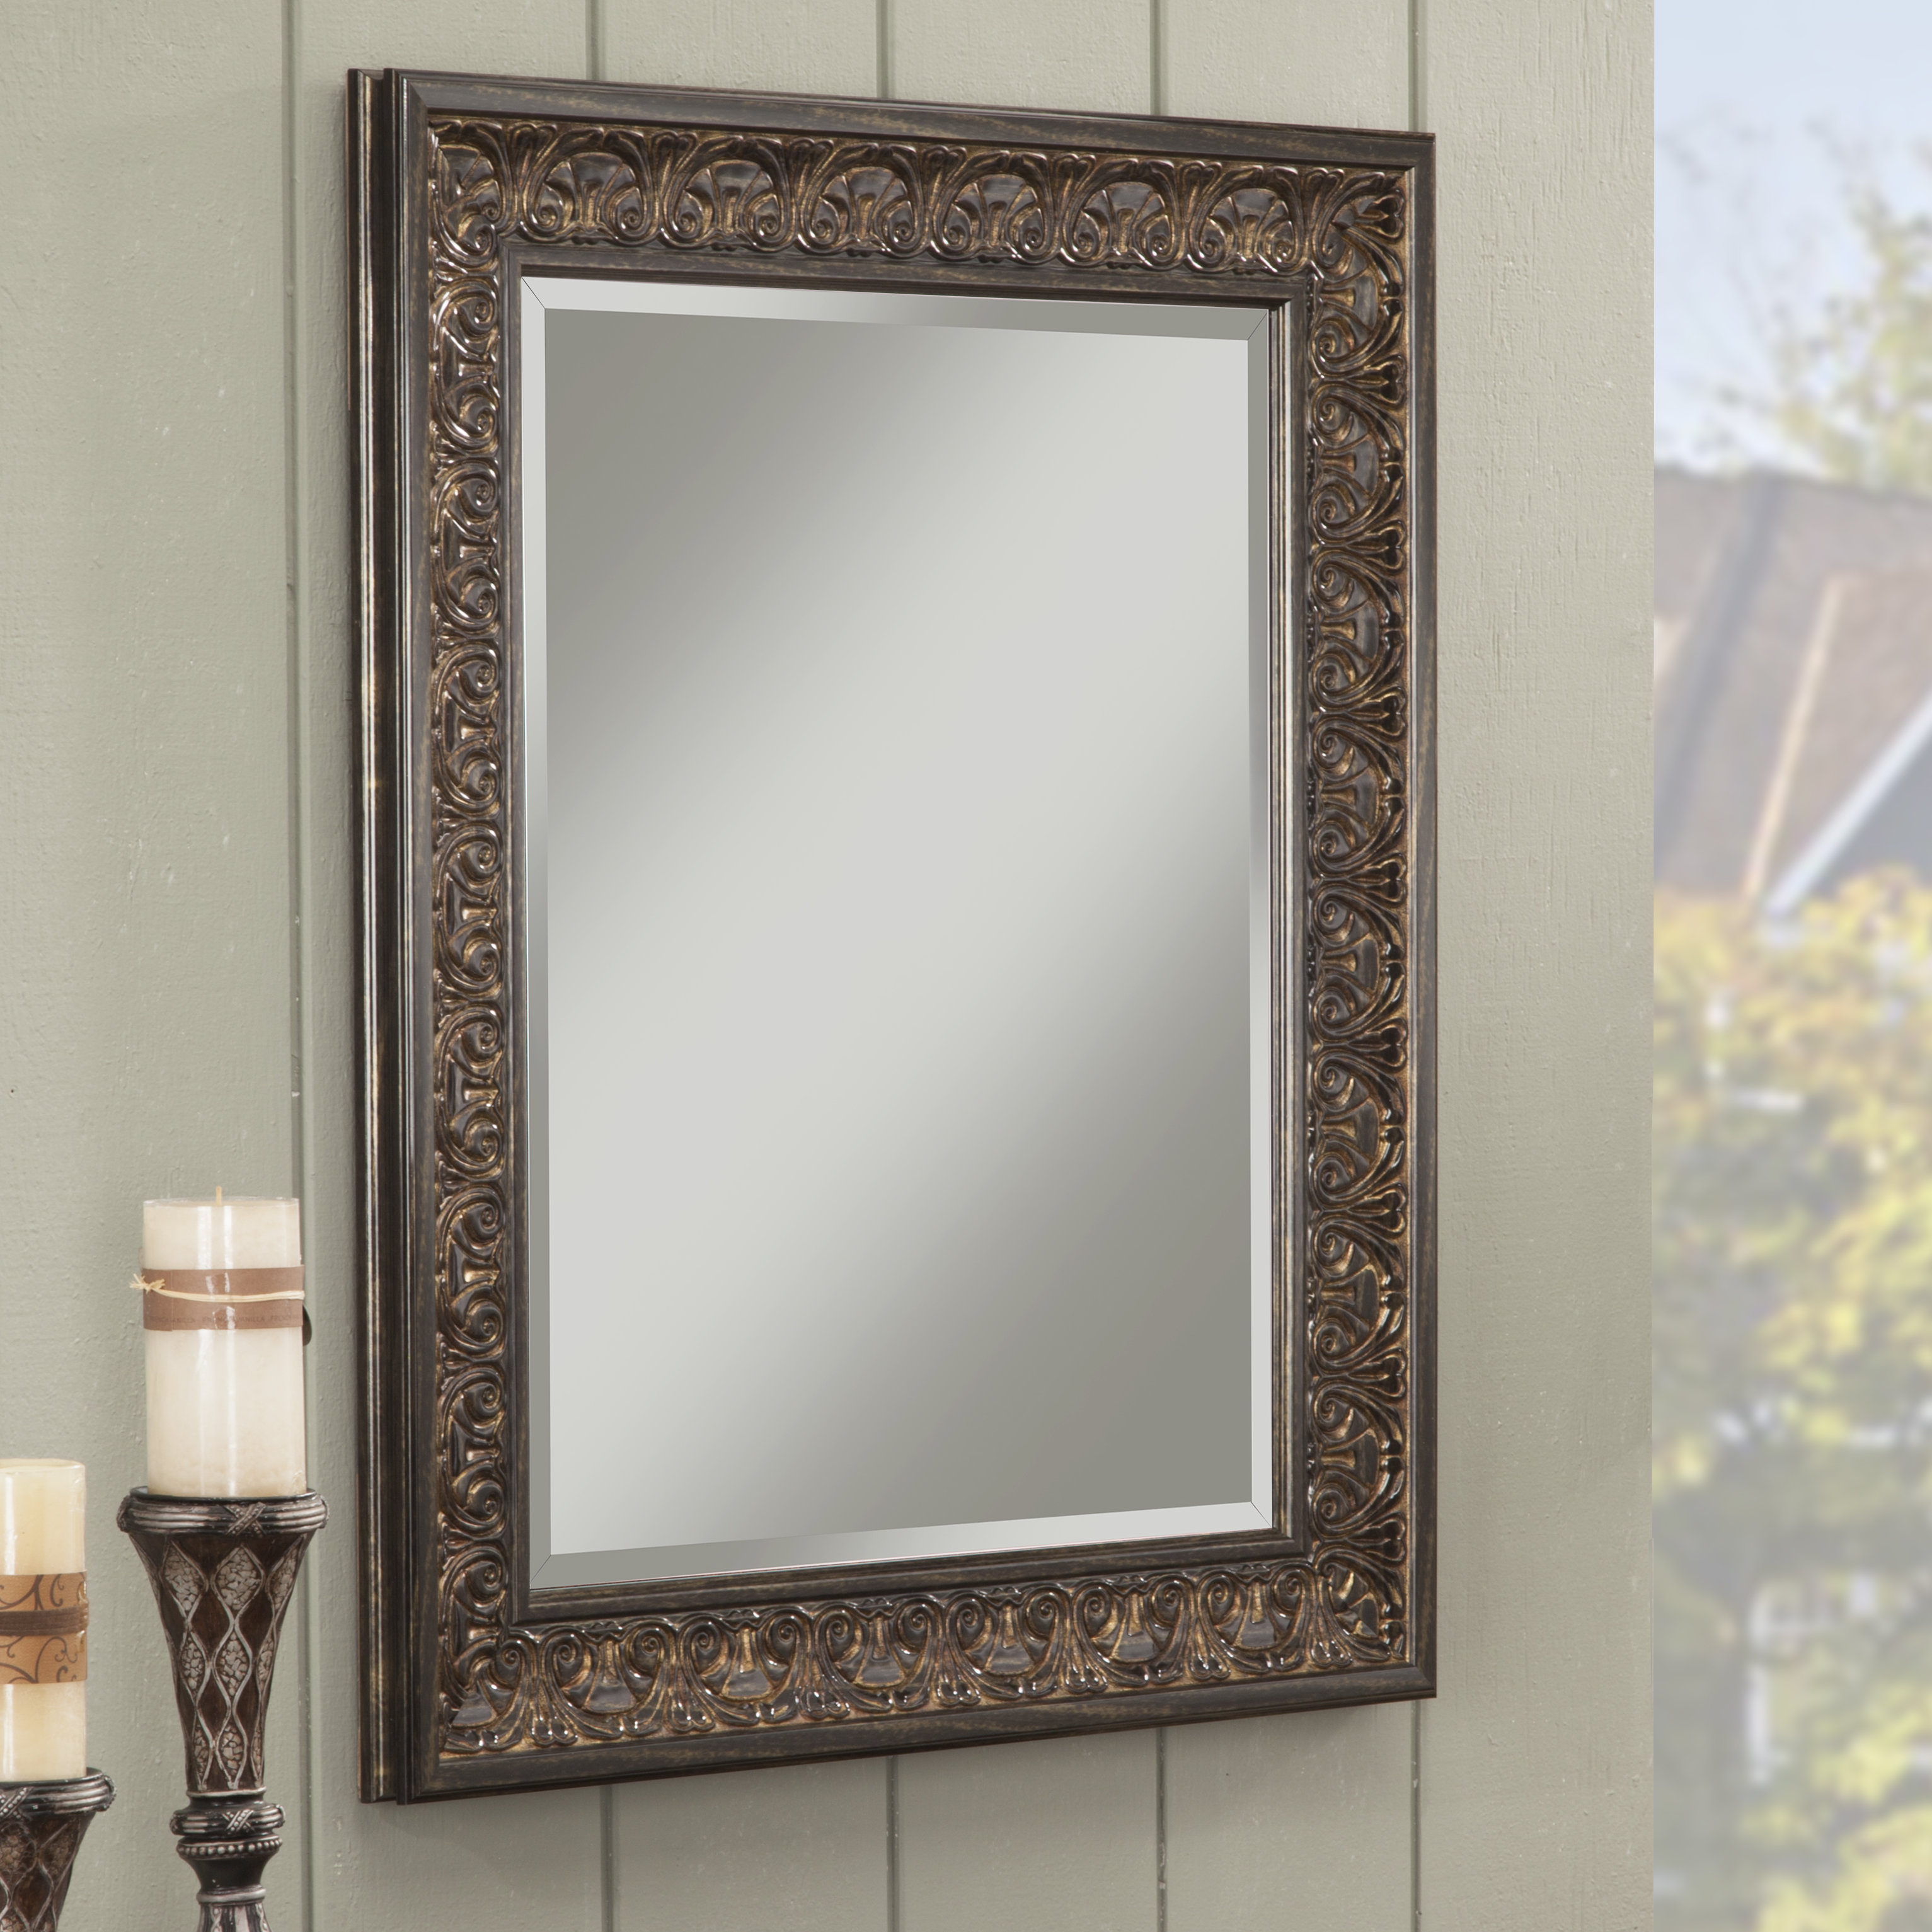 Boyers Wall Mirror With Lake Park Beveled Beaded Accent Wall Mirrors (Photo 5 of 20)